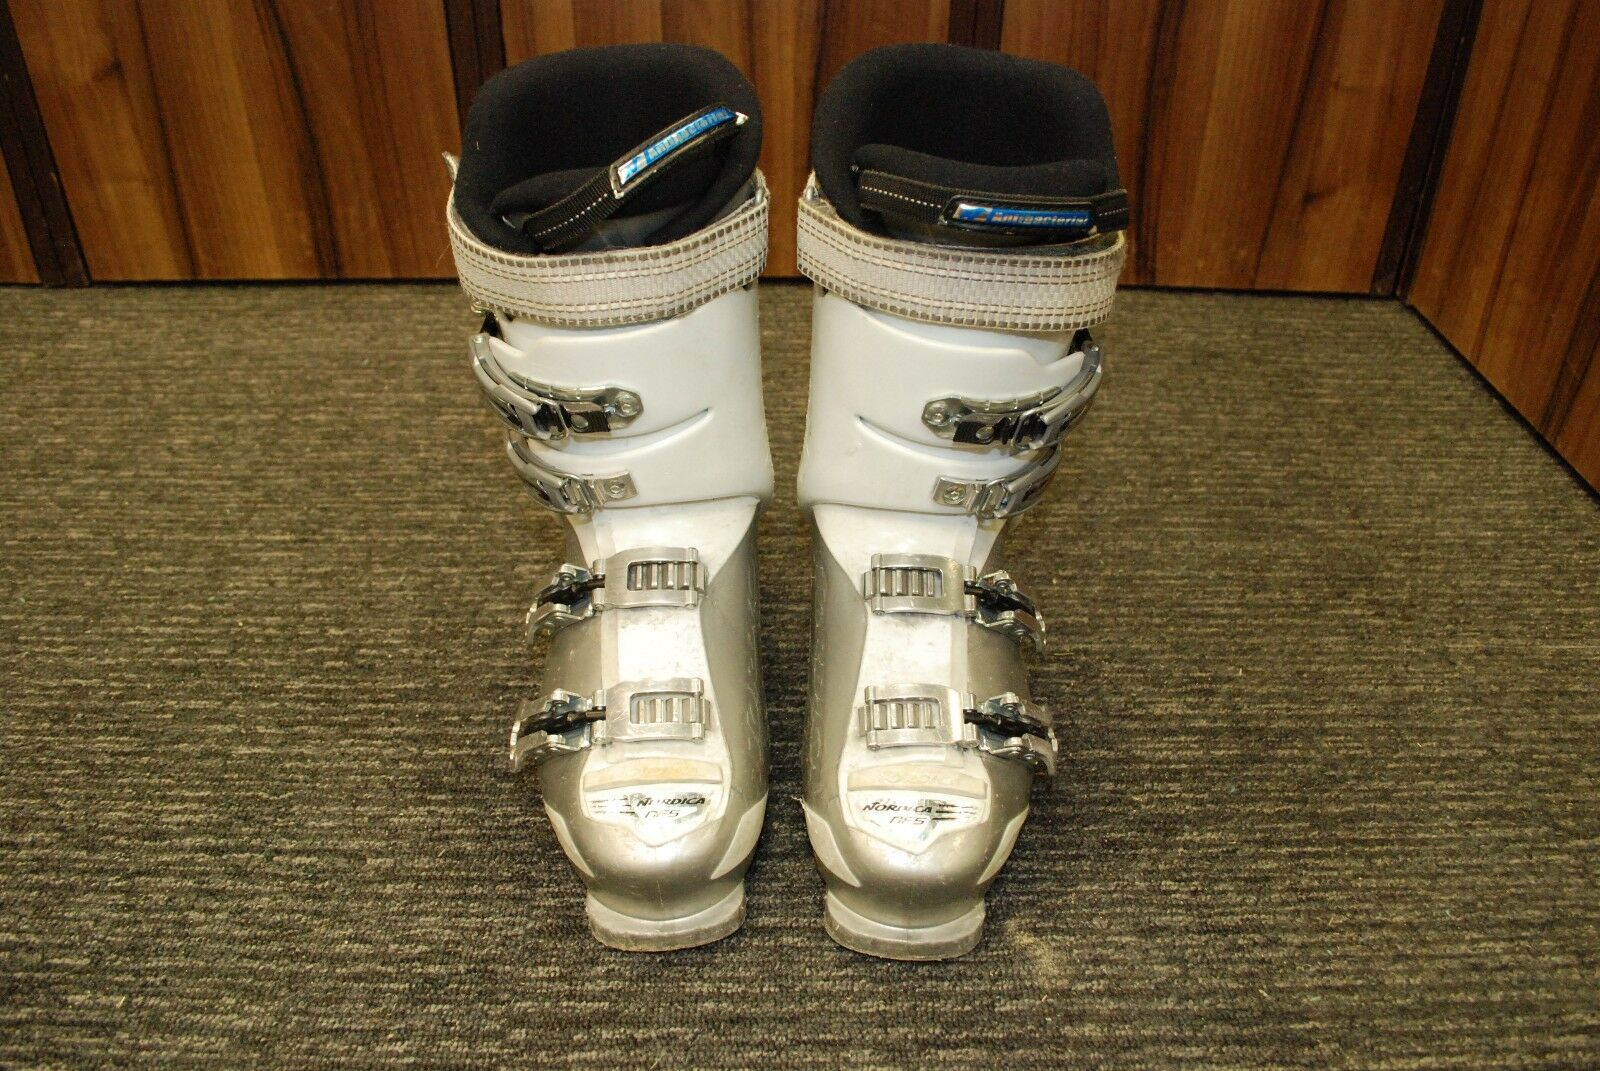 Nordica Cruise NFS 250 Ski Boots (; ) + FREE BRAND NEW  Boots Bag